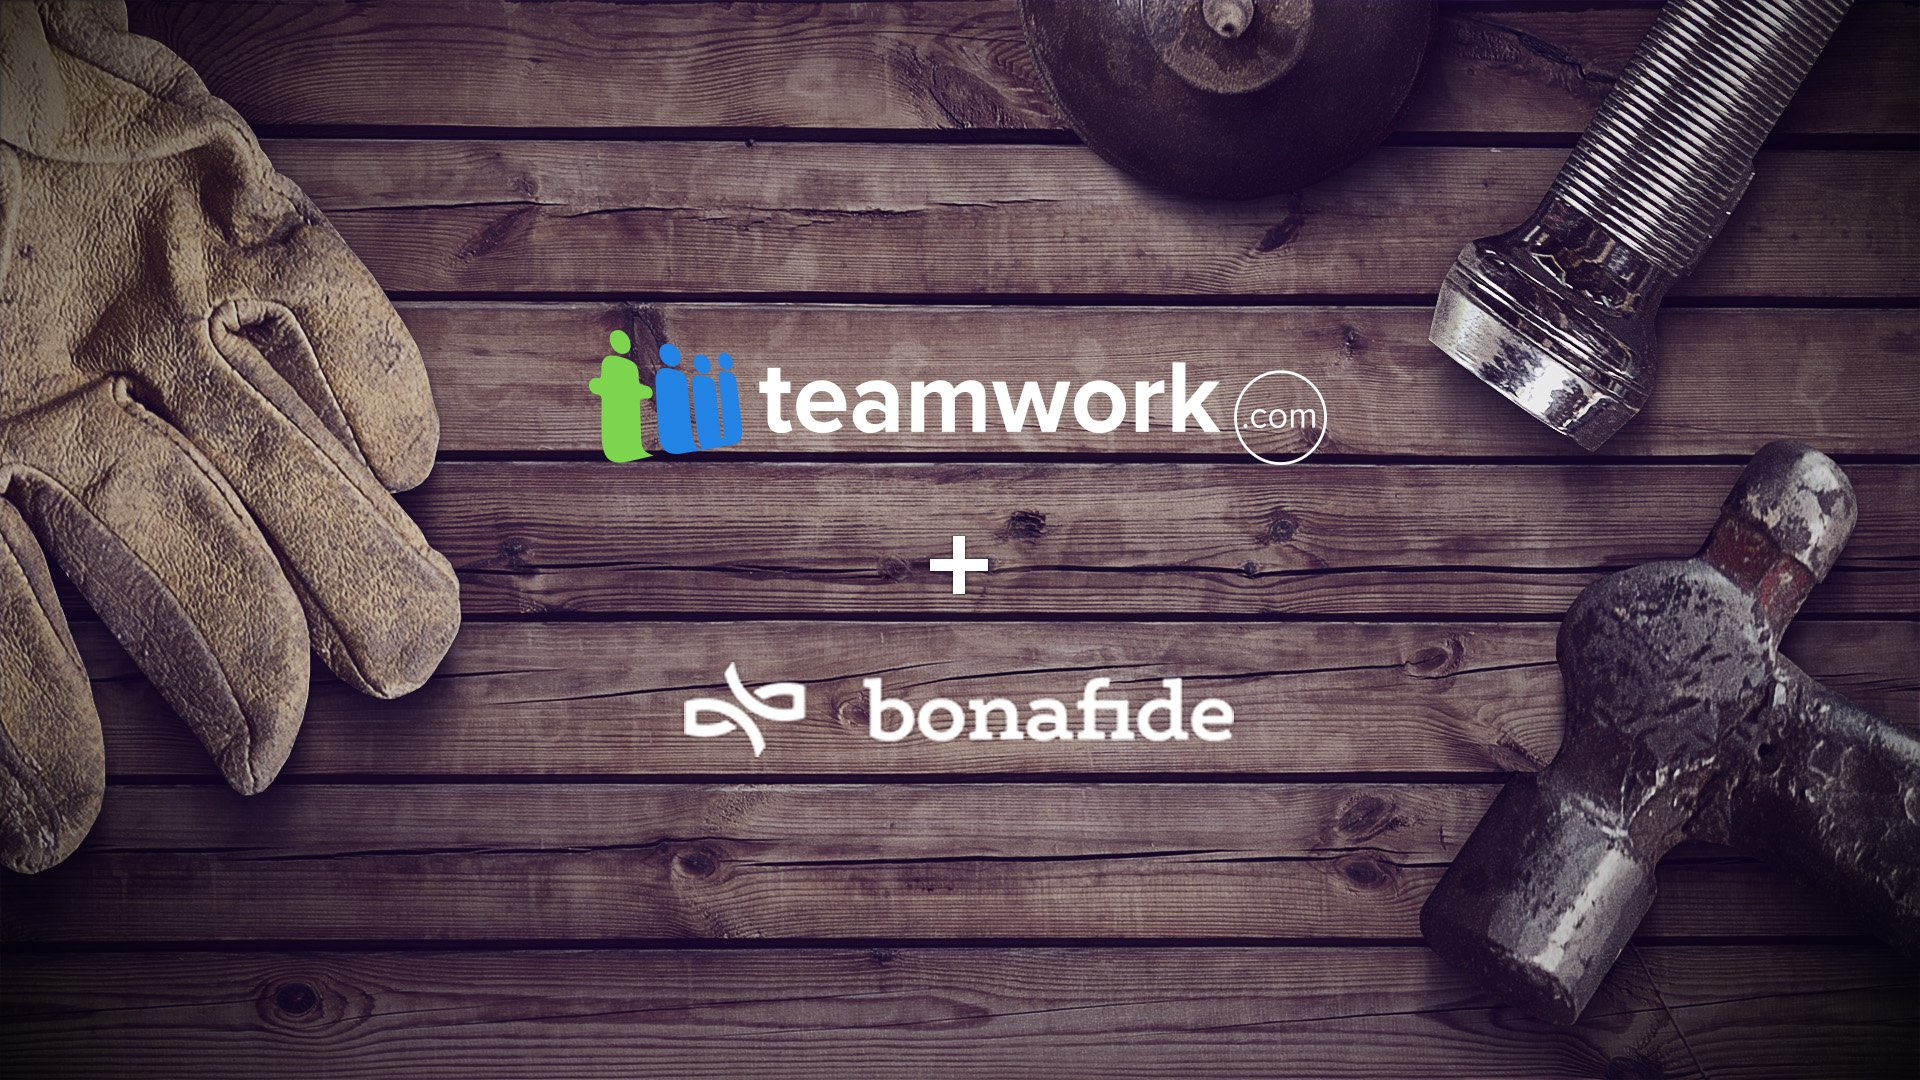 Bonafide uses Teamwork Projects